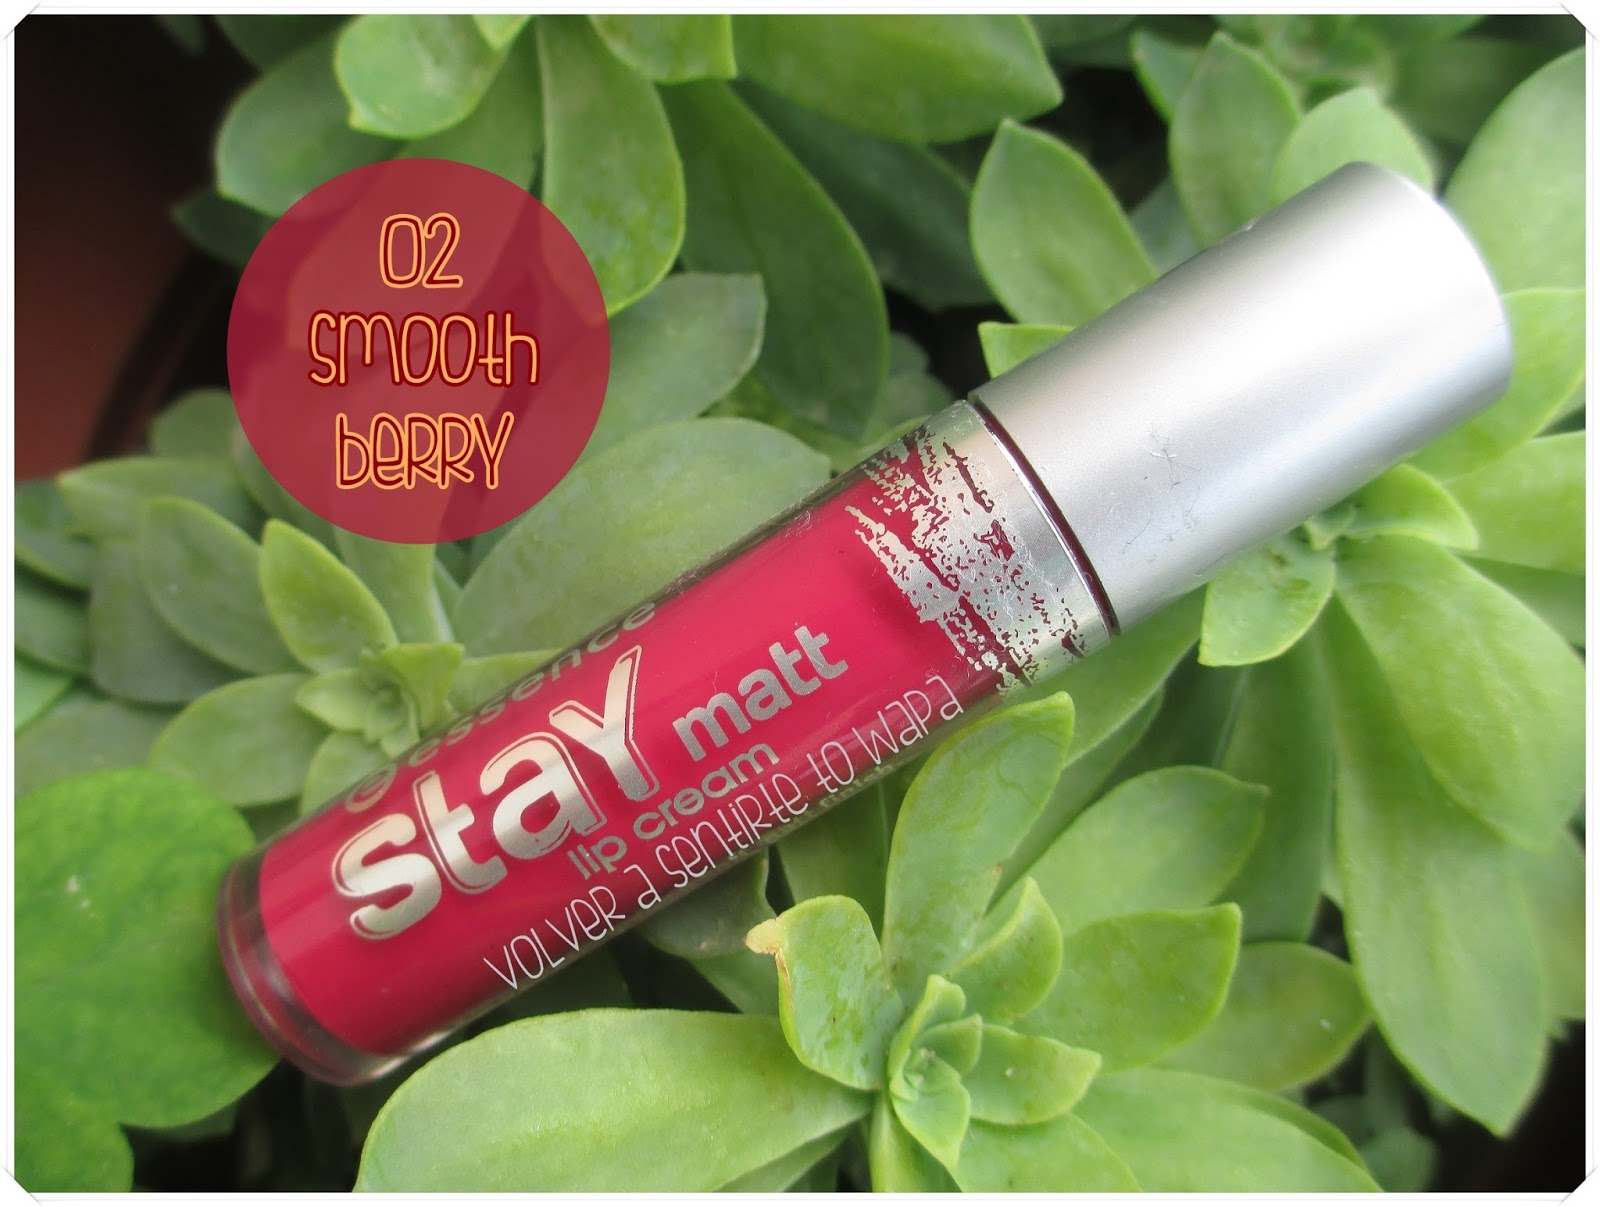 Stay Matt Lip Cream de Essence - 02 Smooth Berry